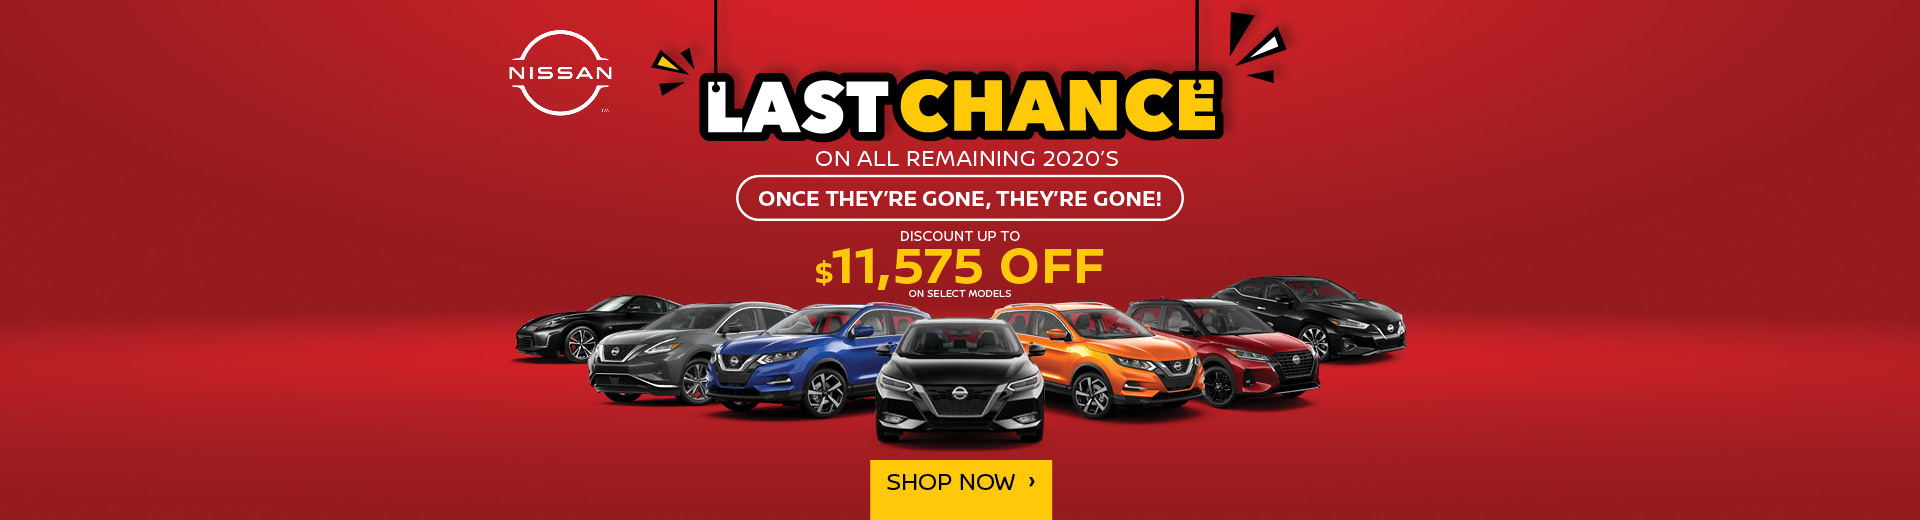 Last Chance on All Remaining 2020's at Fish Creek Nissan